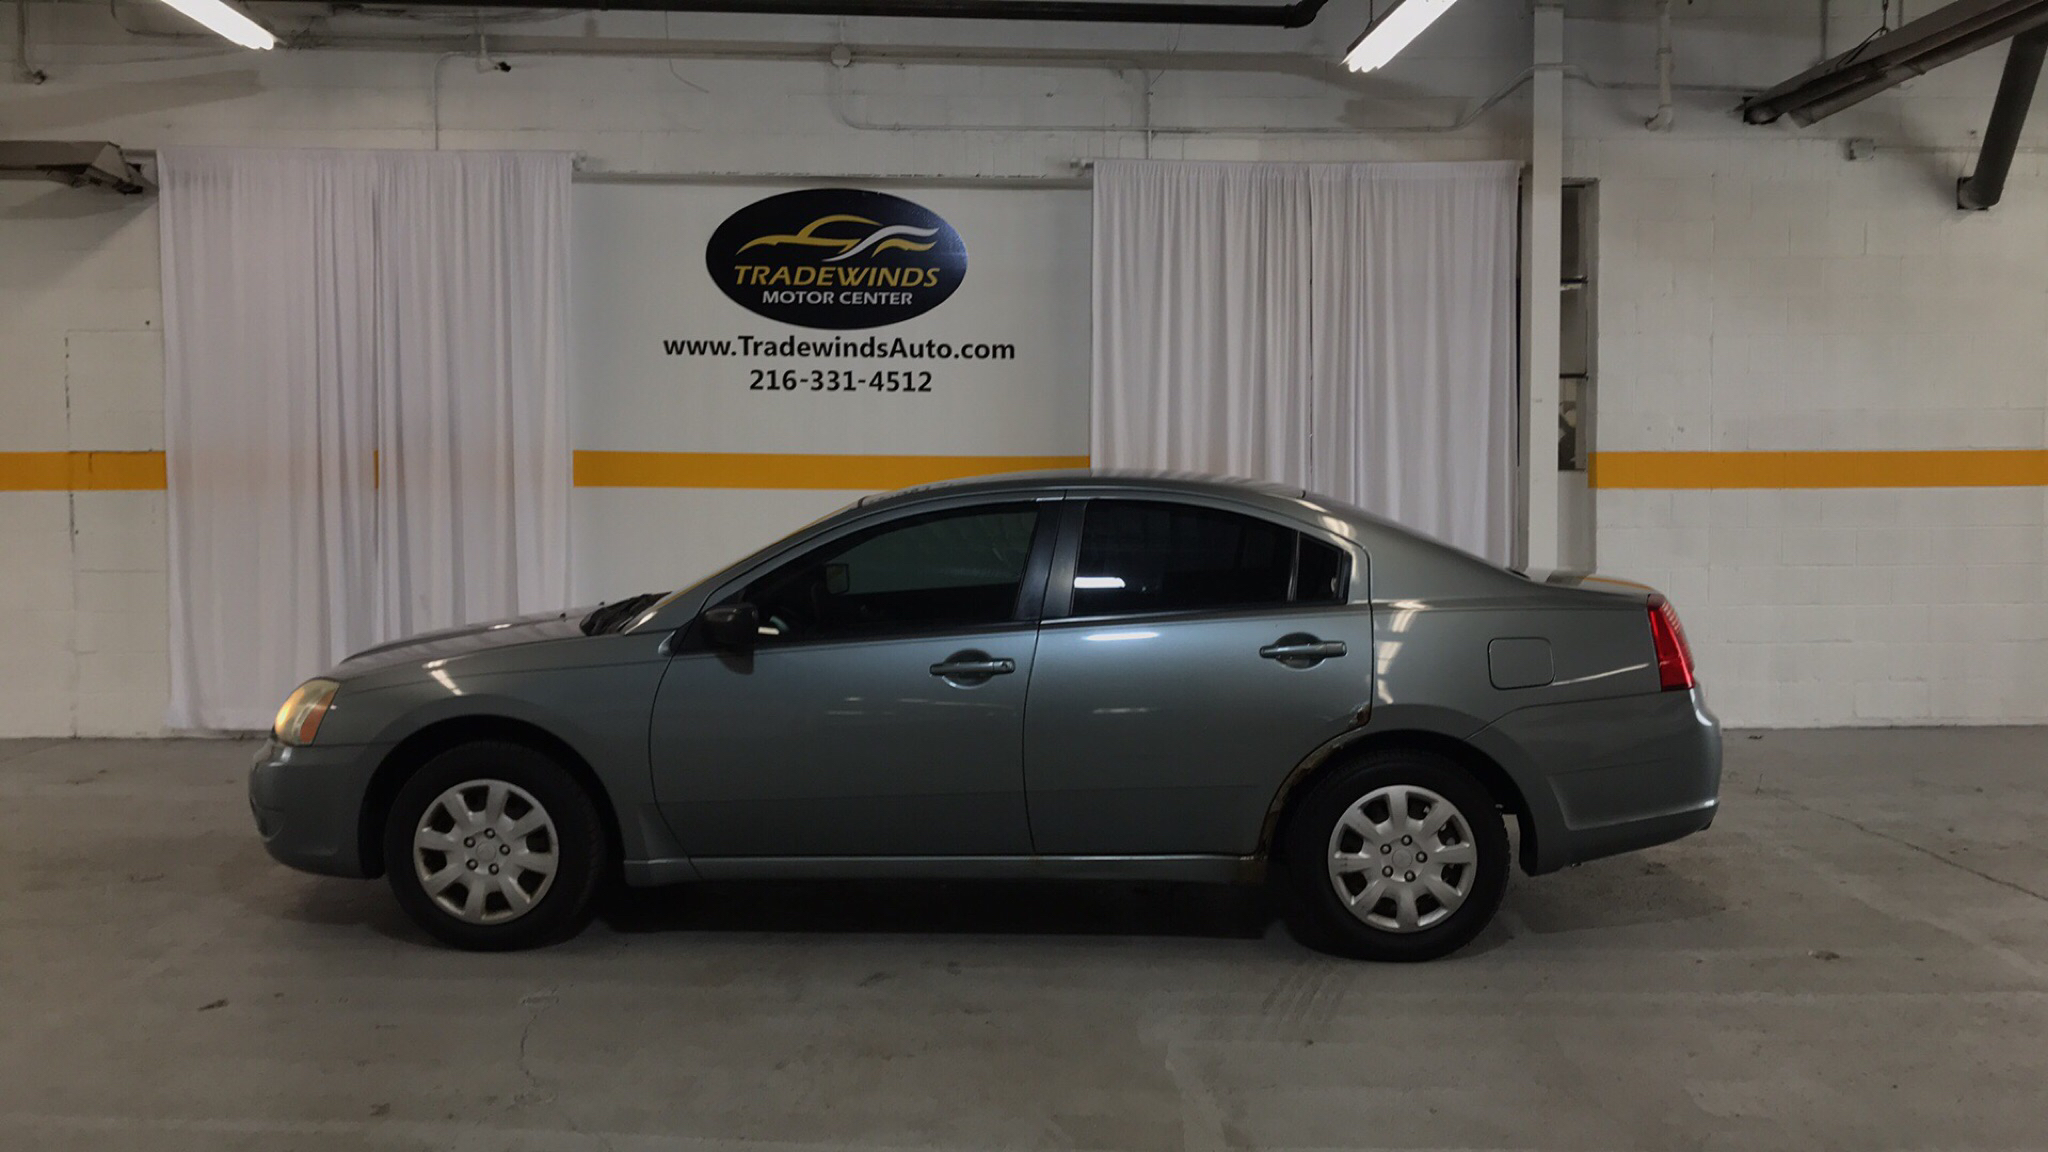 2007 MITSUBISHI GALANT ES for sale at Tradewinds Motor Center